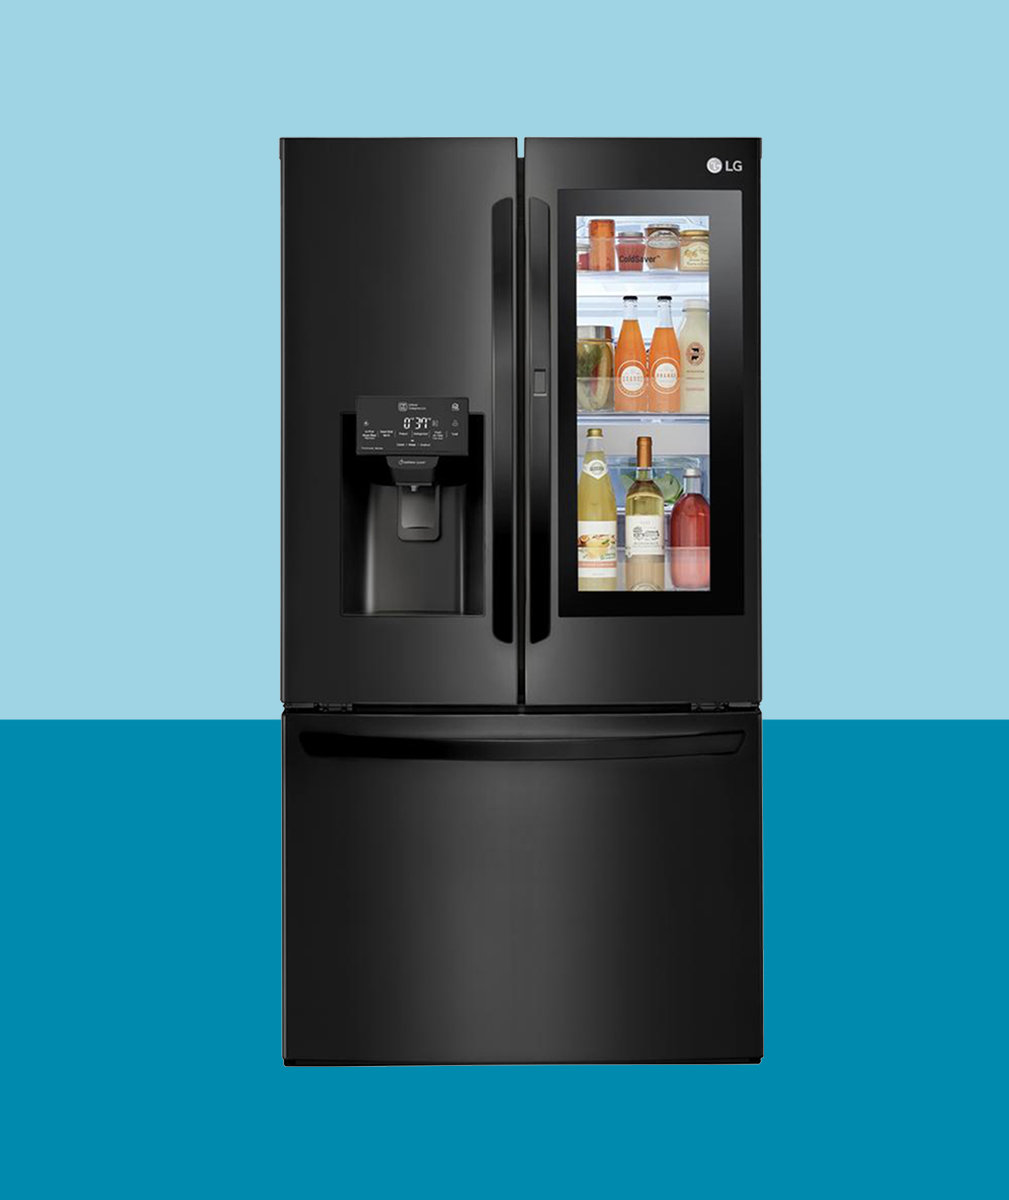 The Insanely Good Household Appliances on Our Black Friday and Cyber Monday Wish List